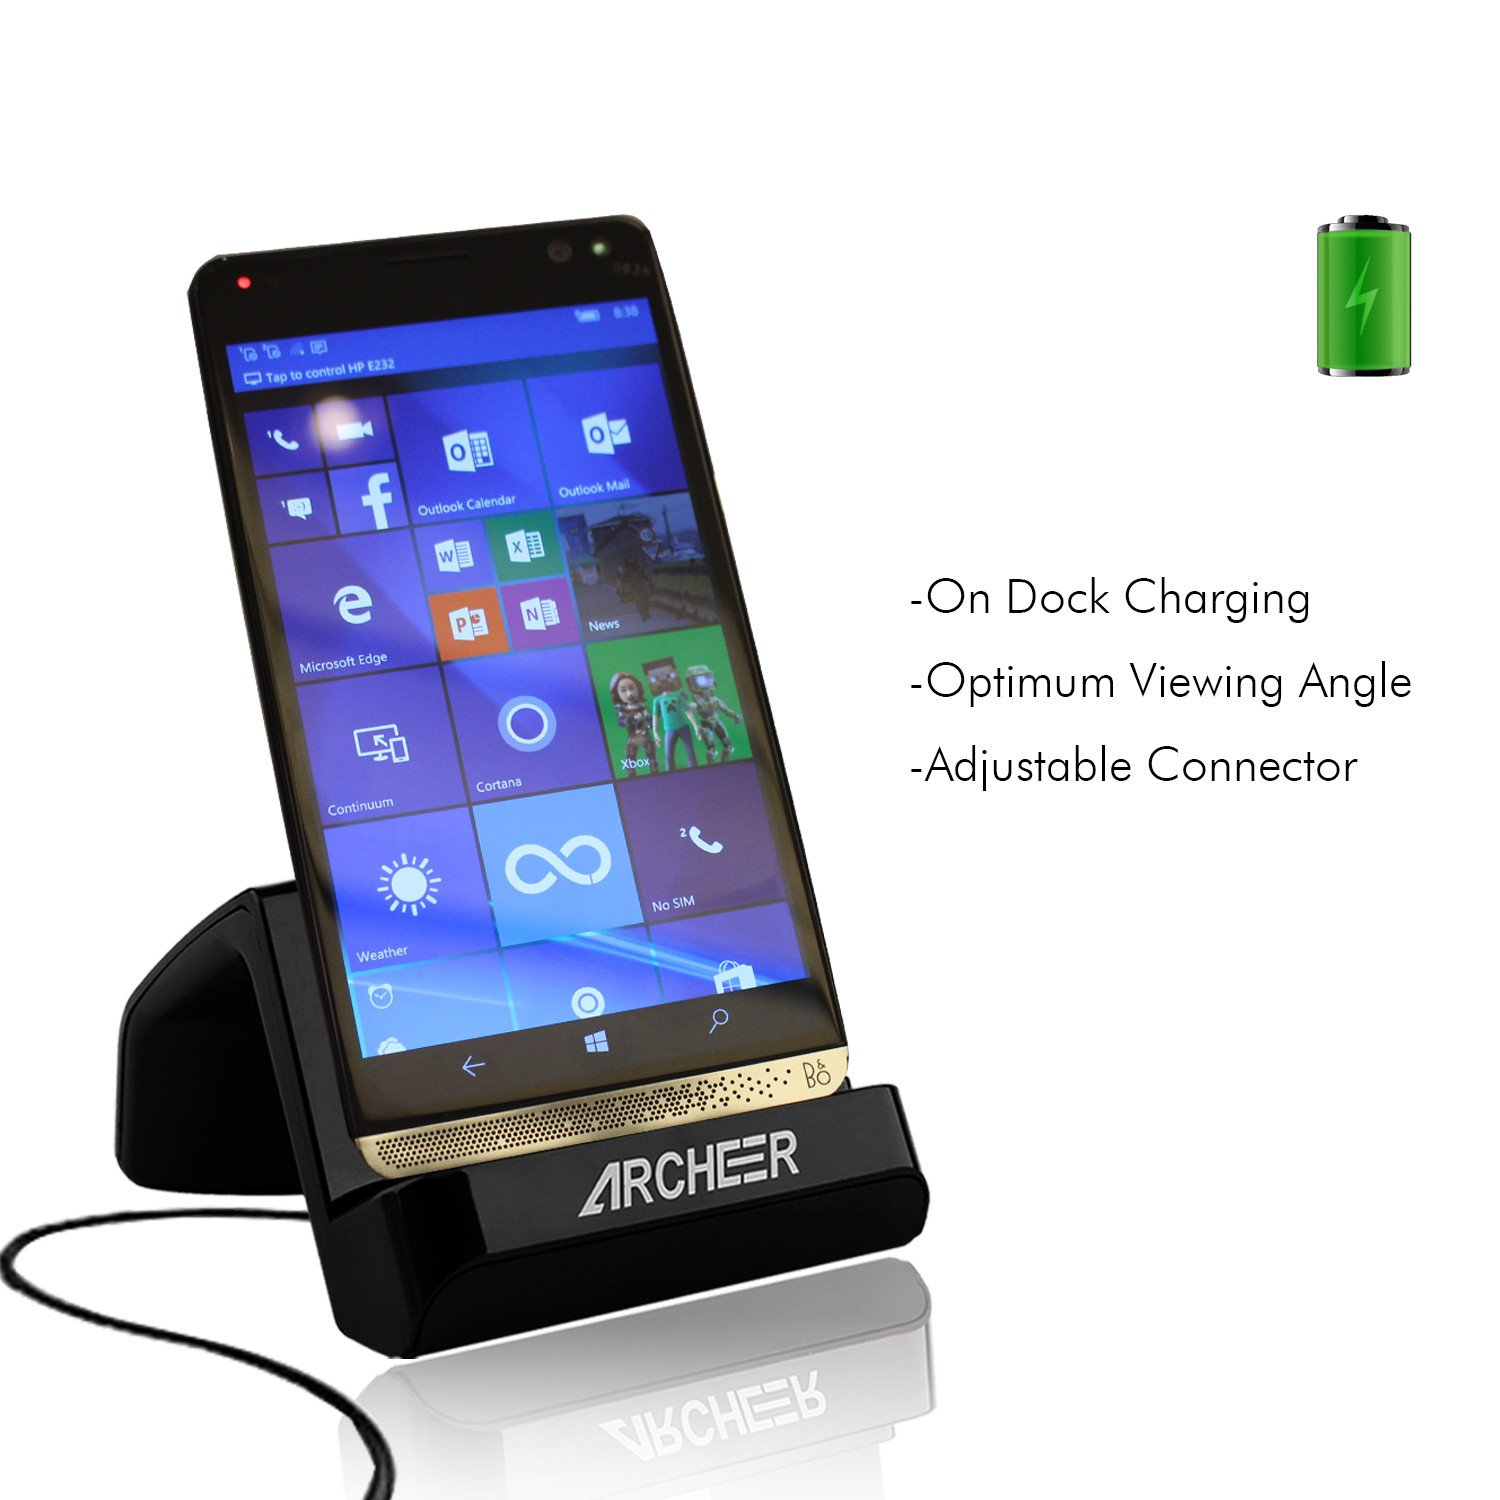 USB Type C Charger ARCHEER USB C Charging Dock Cradle Charging Desktop Cellphone Stand Charger for HuaWei P9, LG G5, HTC 10, HP Elite X3, Nexus5X, Nexus 6P, Lumia 950XL, Oneplus 3